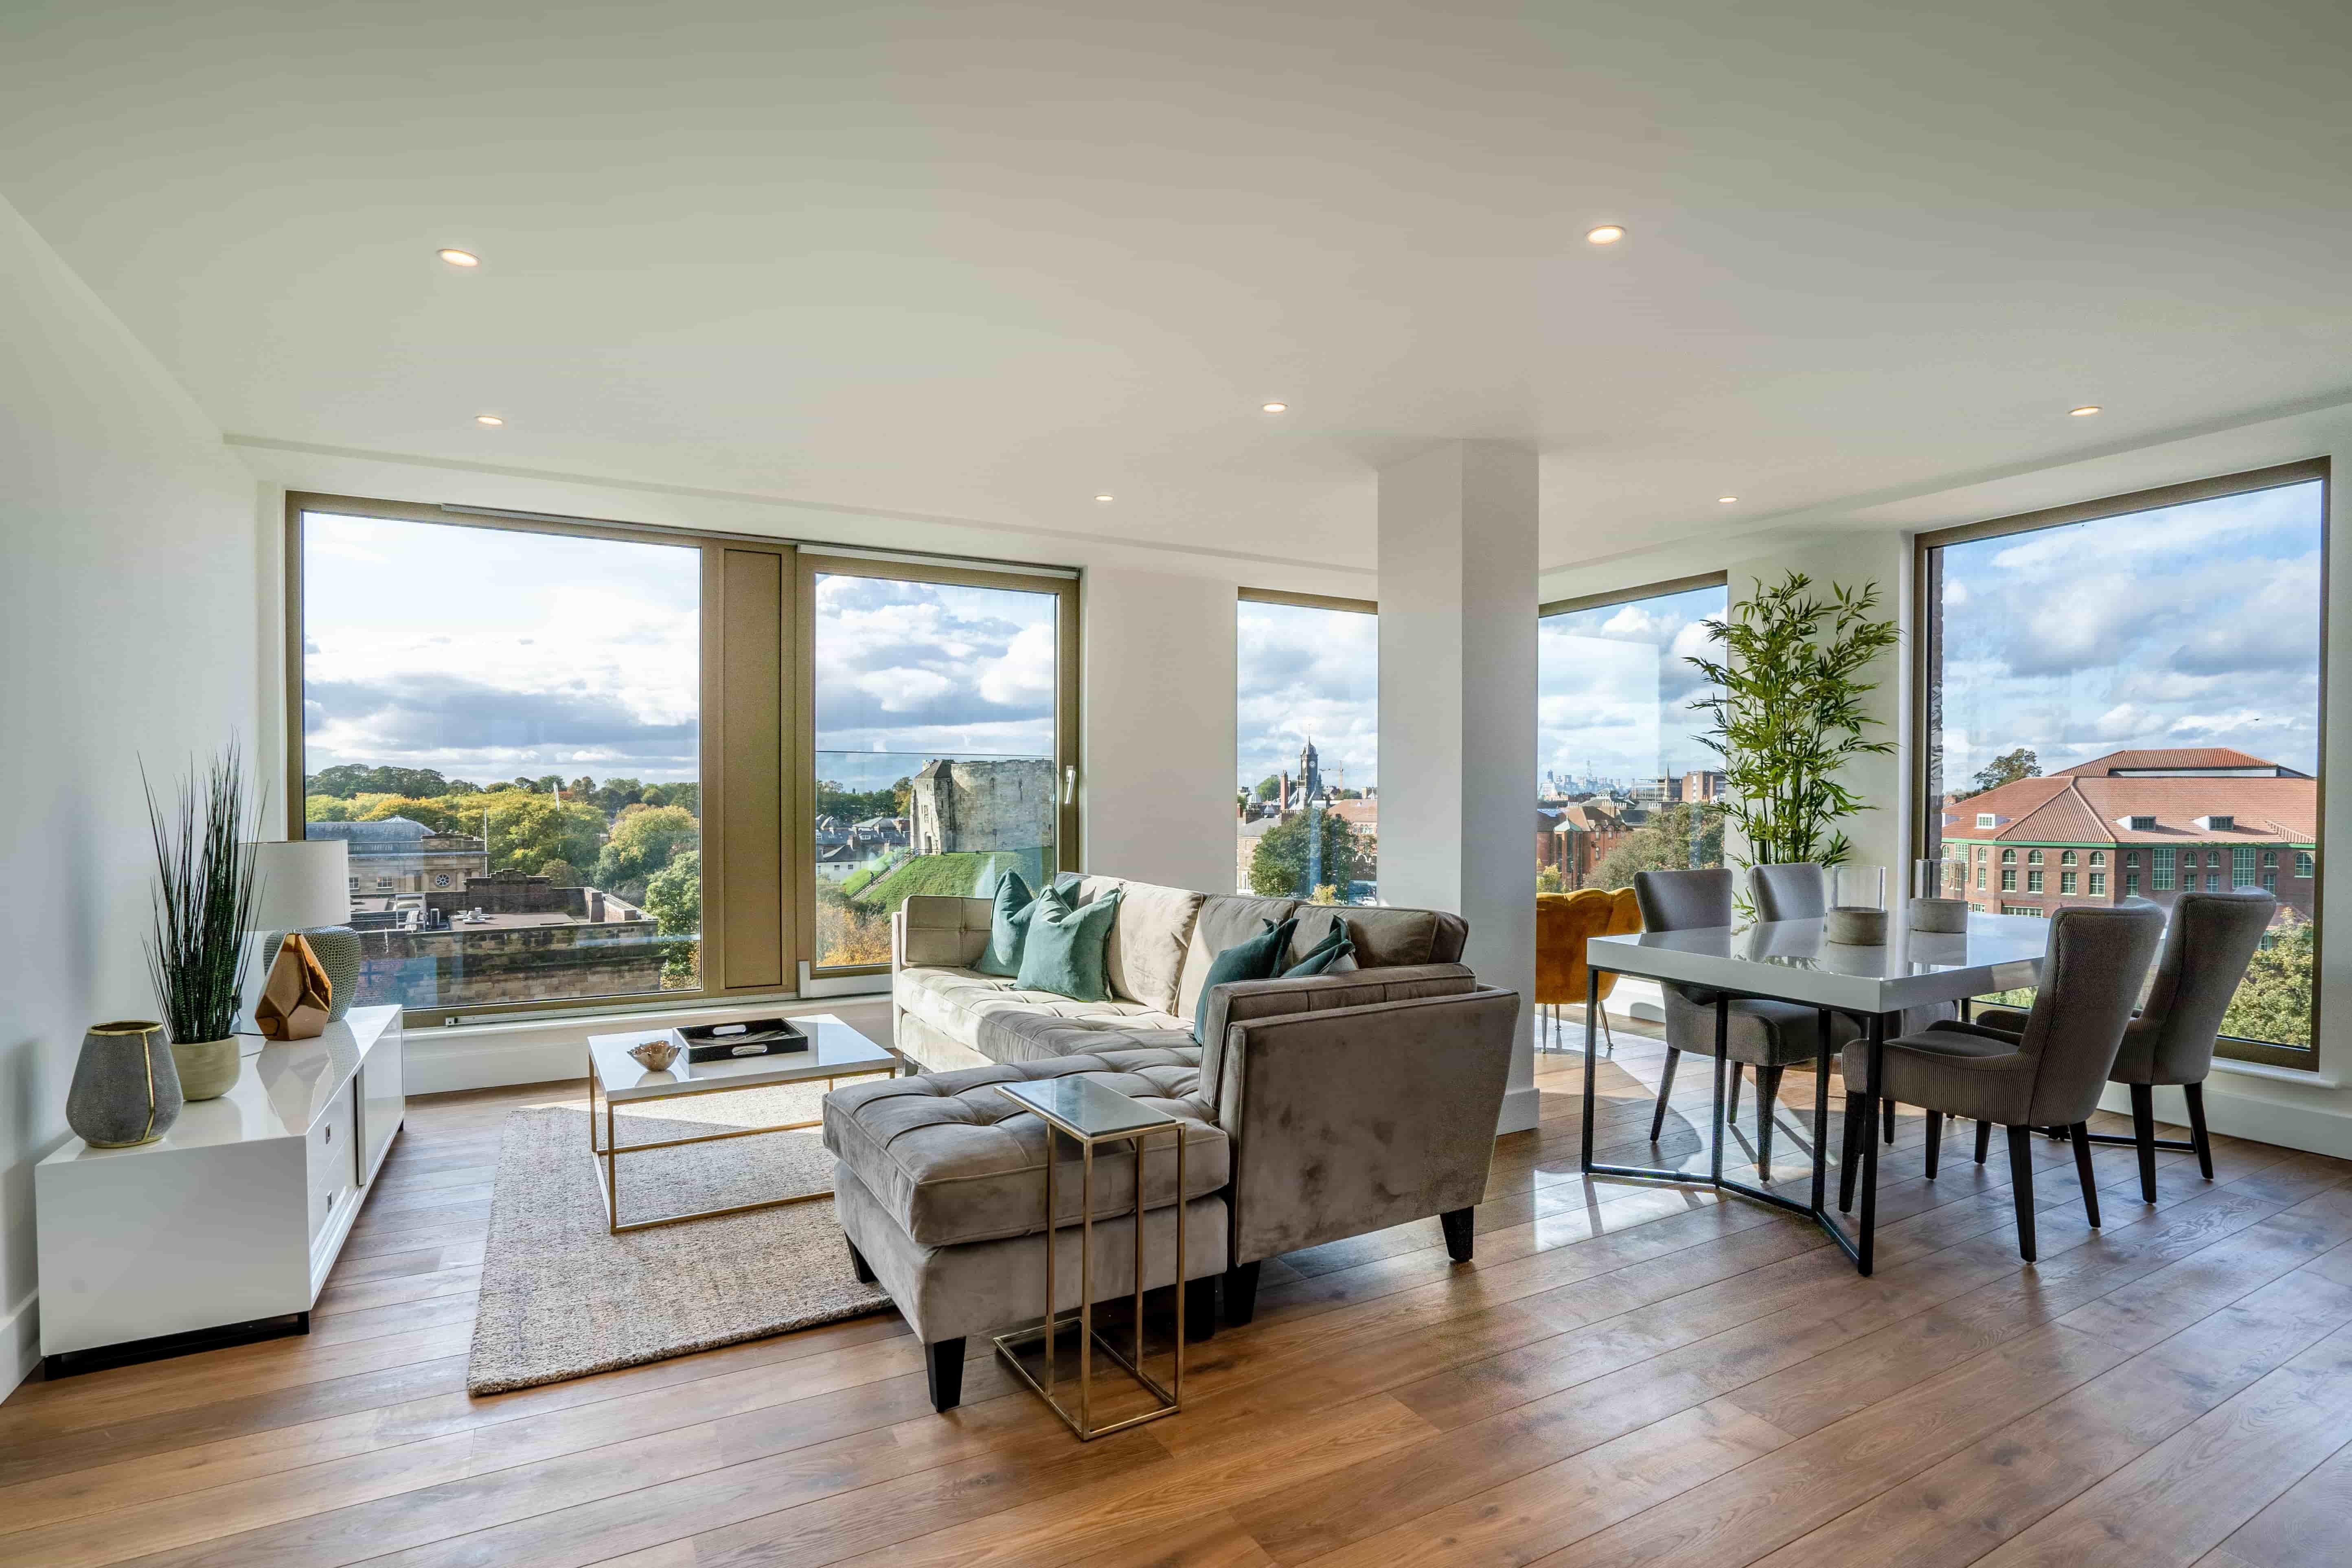 Ryedale House Apartments For Sale In York City Centre